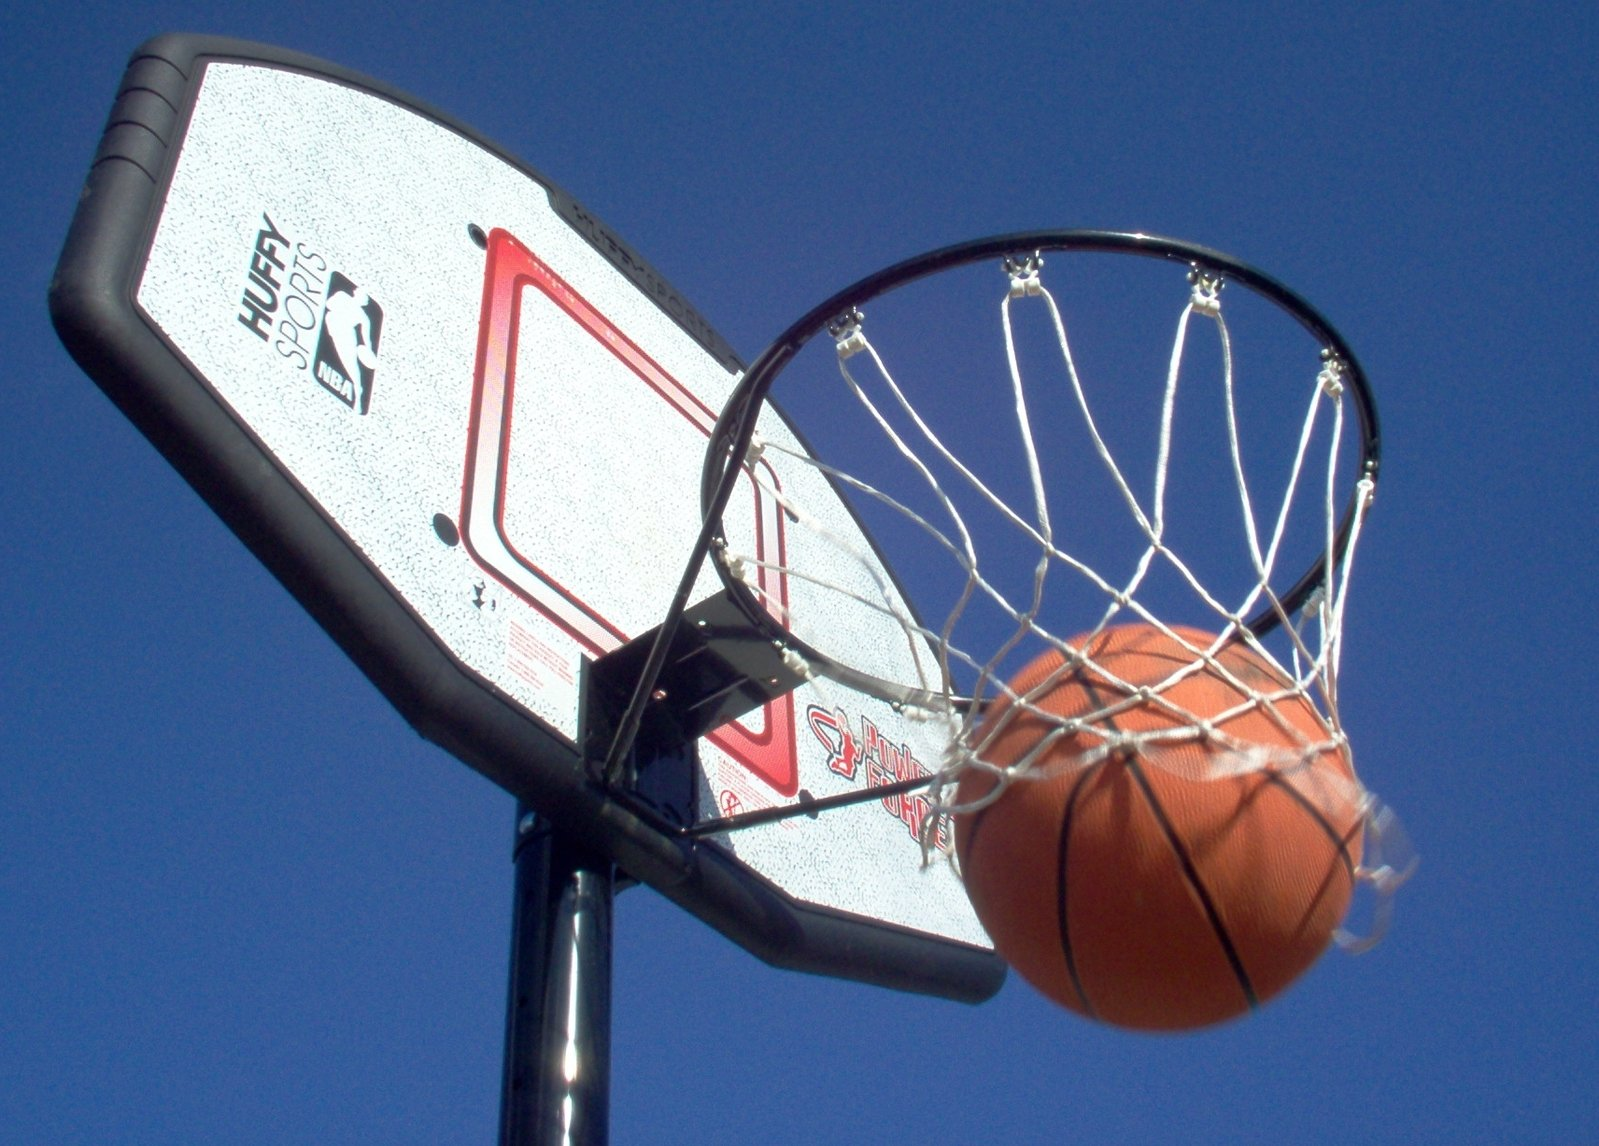 free basketball in net stock photo freeimages com